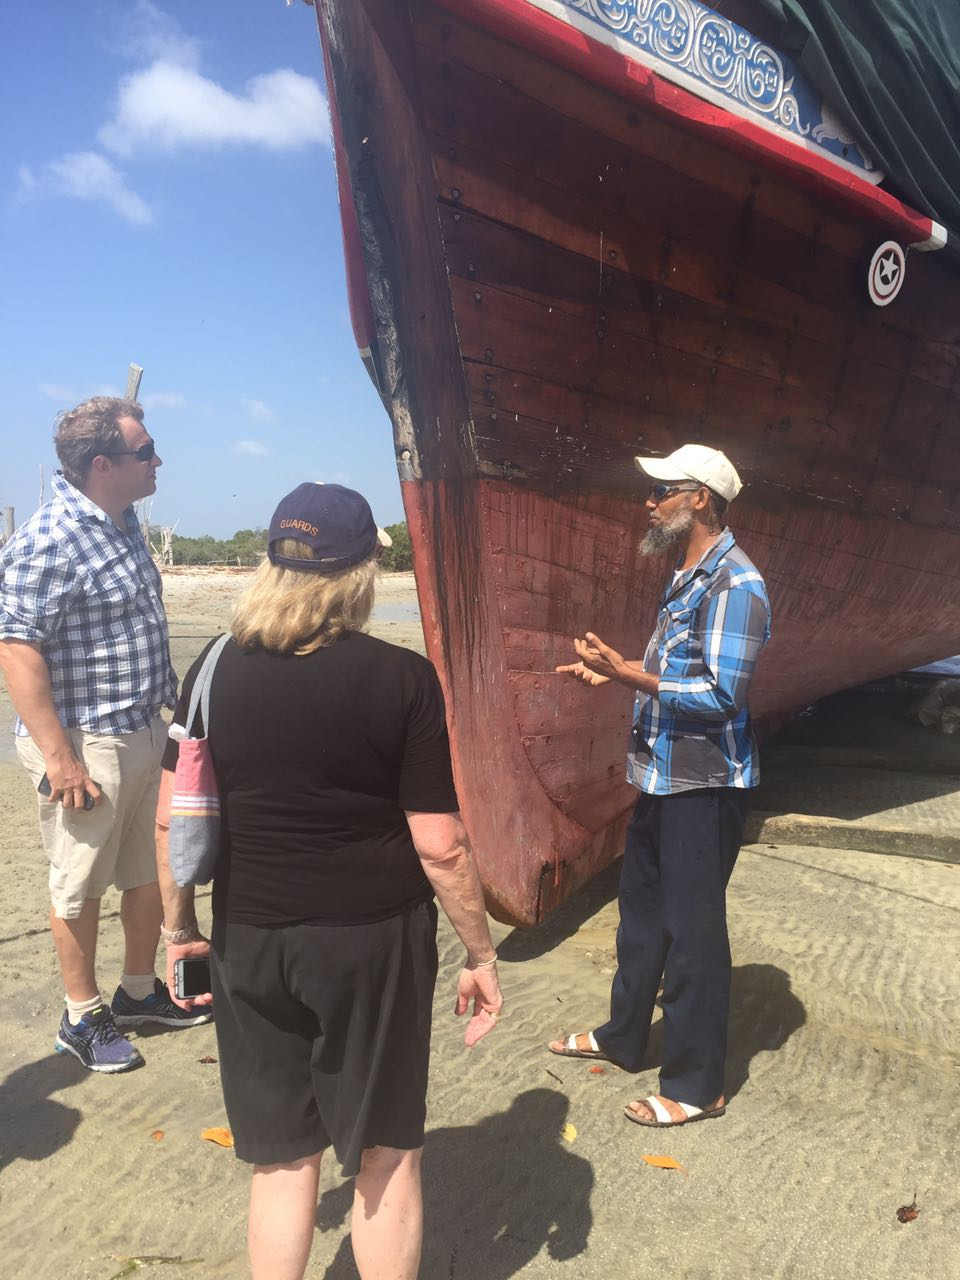 Ali explaining the significance of Dhows, and the craft of Dhow building, in Lamu's cultural heritage.